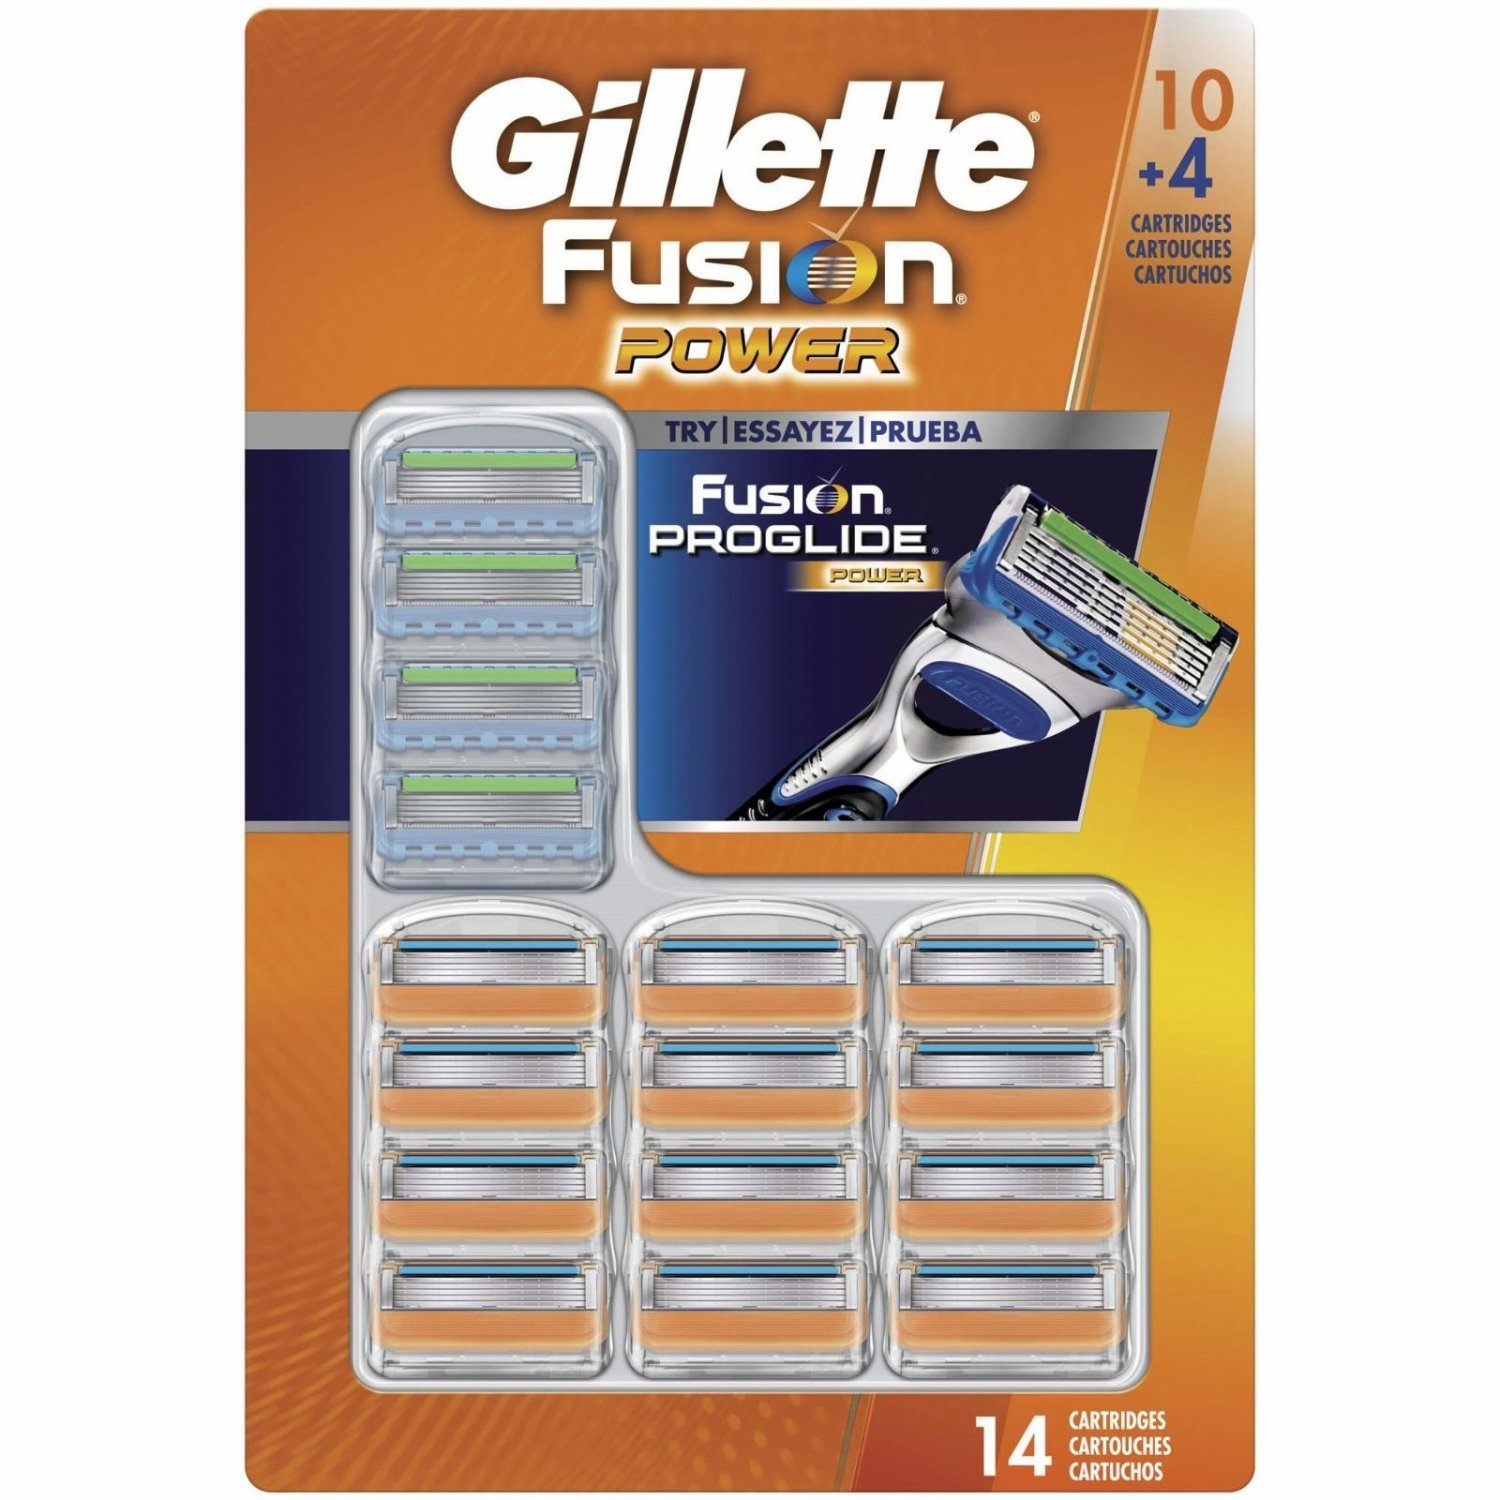 Gillette Fusion Power Razor Blade Refills, 10 ct. Plus Fusion Proglide Power